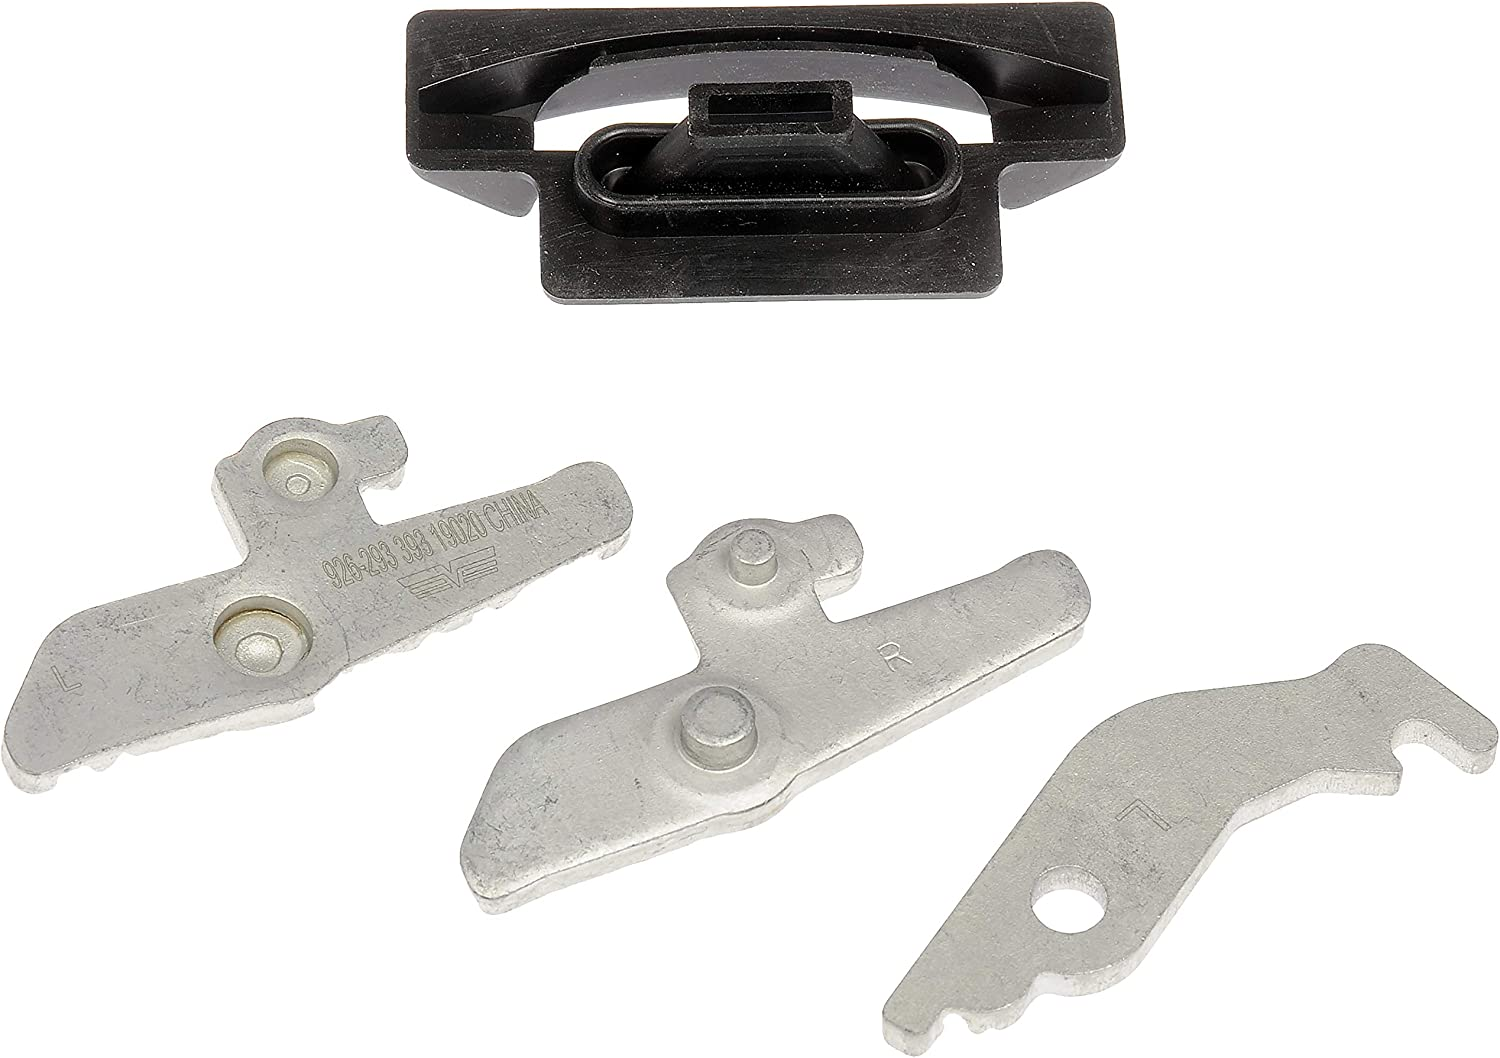 Dorman 926-293 Max 2021 spring and summer new 79% OFF Parking Brake Lever for Select Jeep Kit Models